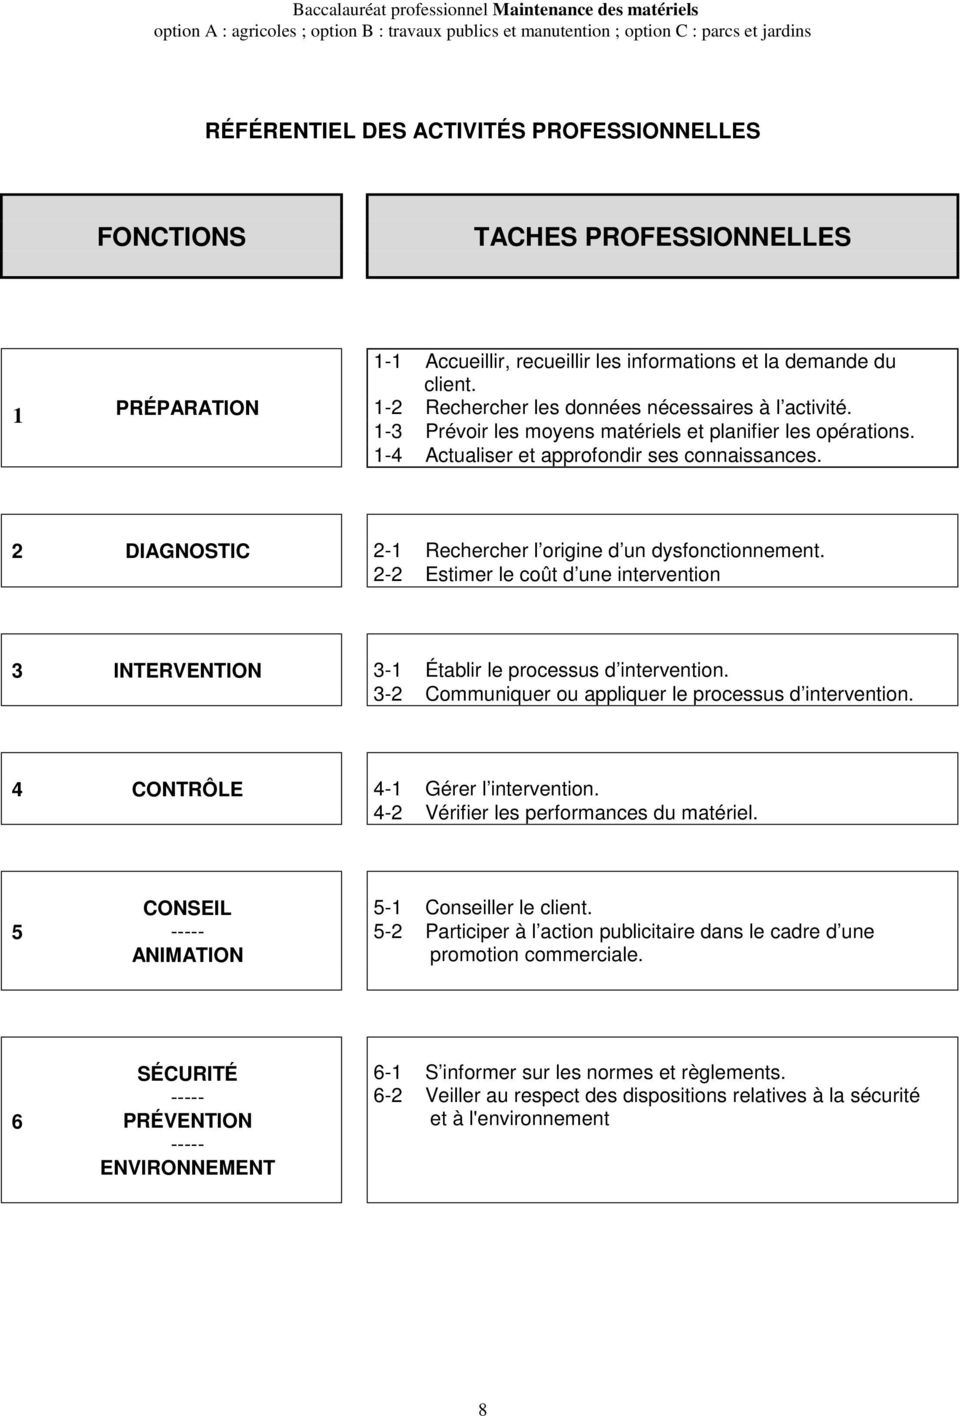 2 DIAGNOSTIC 2-1 Rechercher l origine d un dysfonctionnement. 2-2 Estimer le coût d une intervention 3 INTERVENTION 3-1 Établir le processus d intervention.